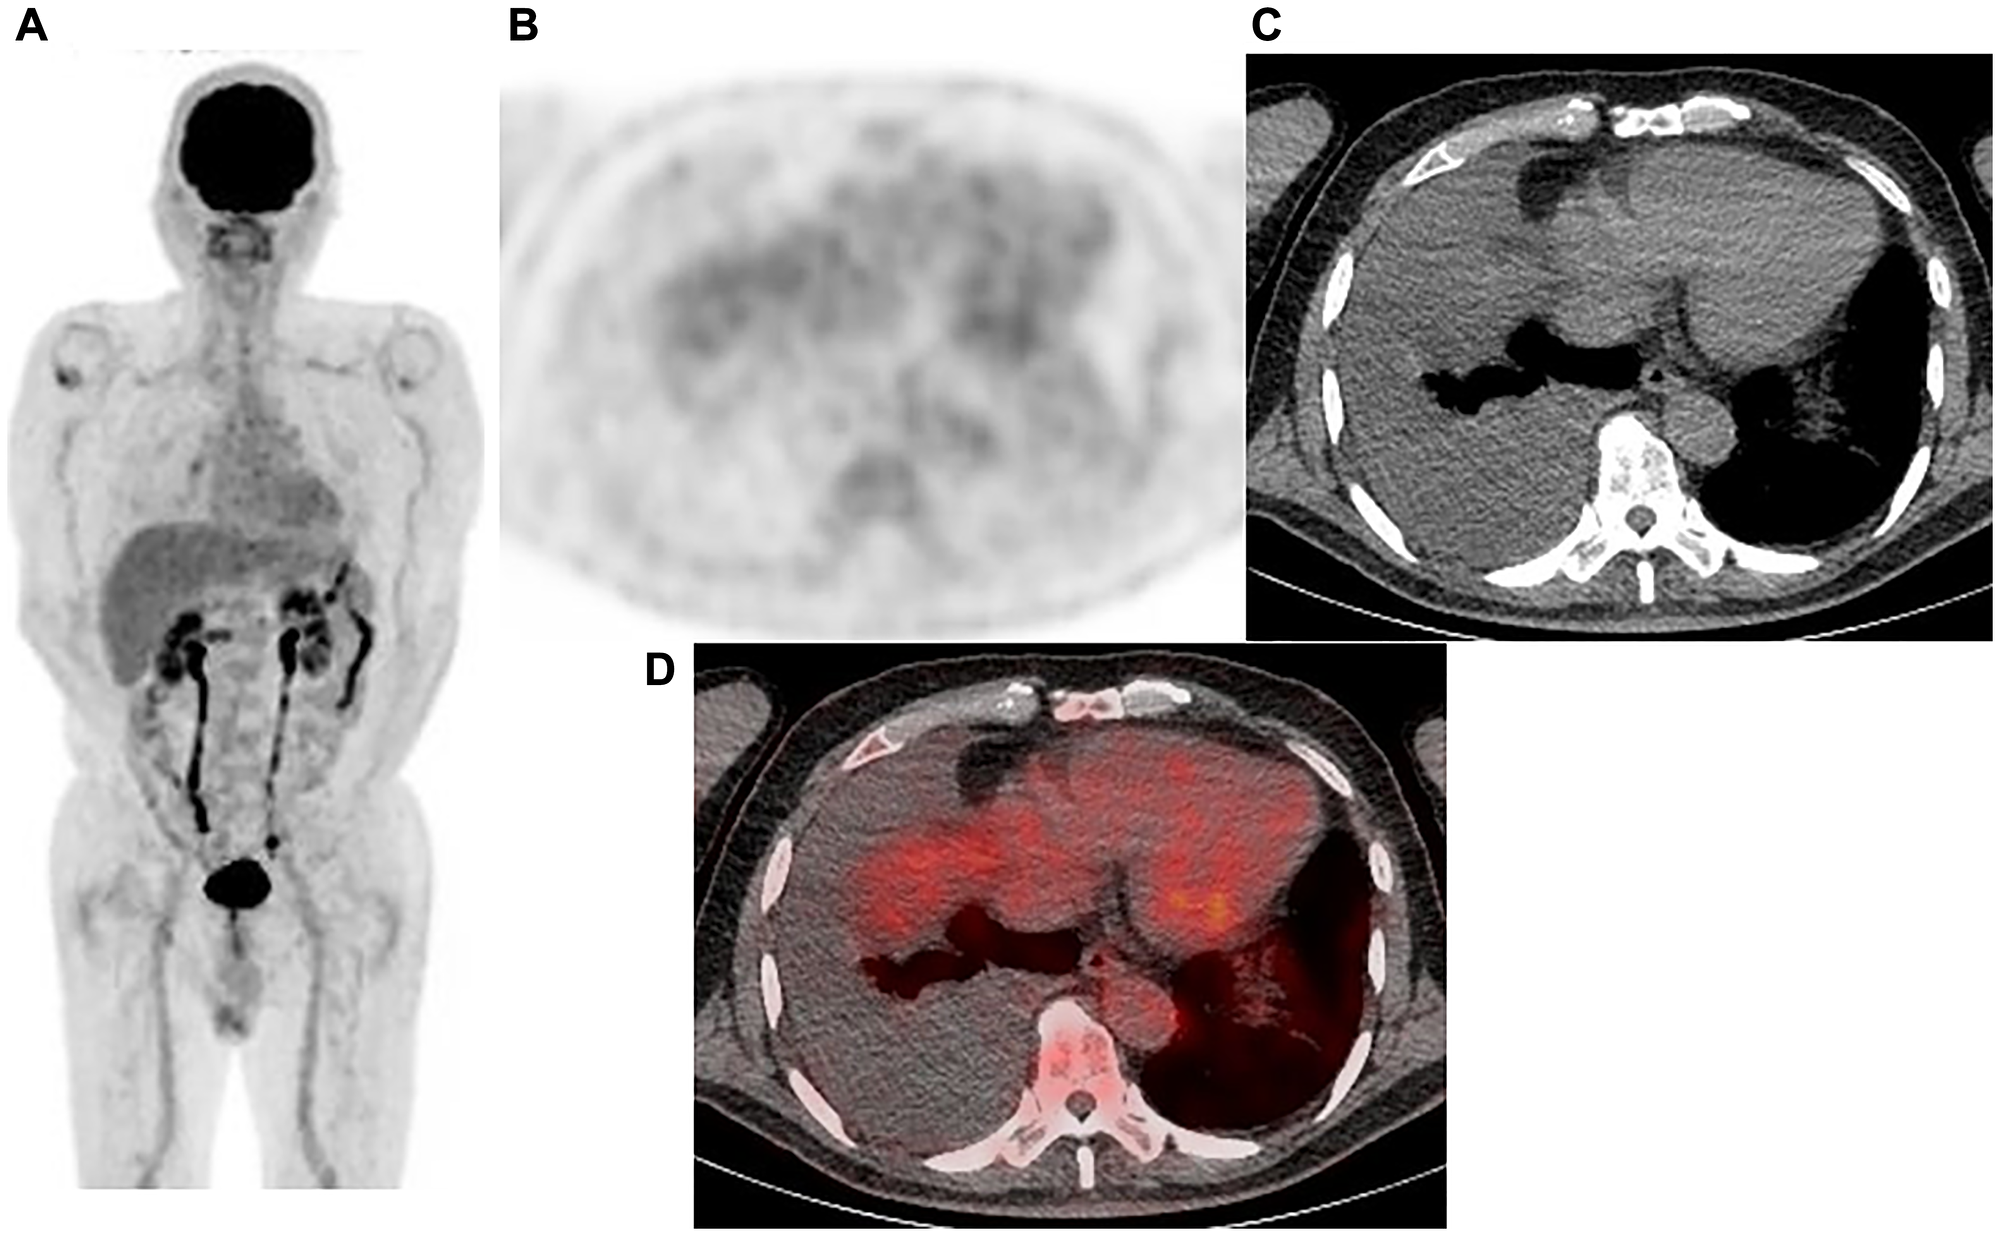 Representative case: 77-year-old male with right malignant pleural mesothelioma (epithelial type).